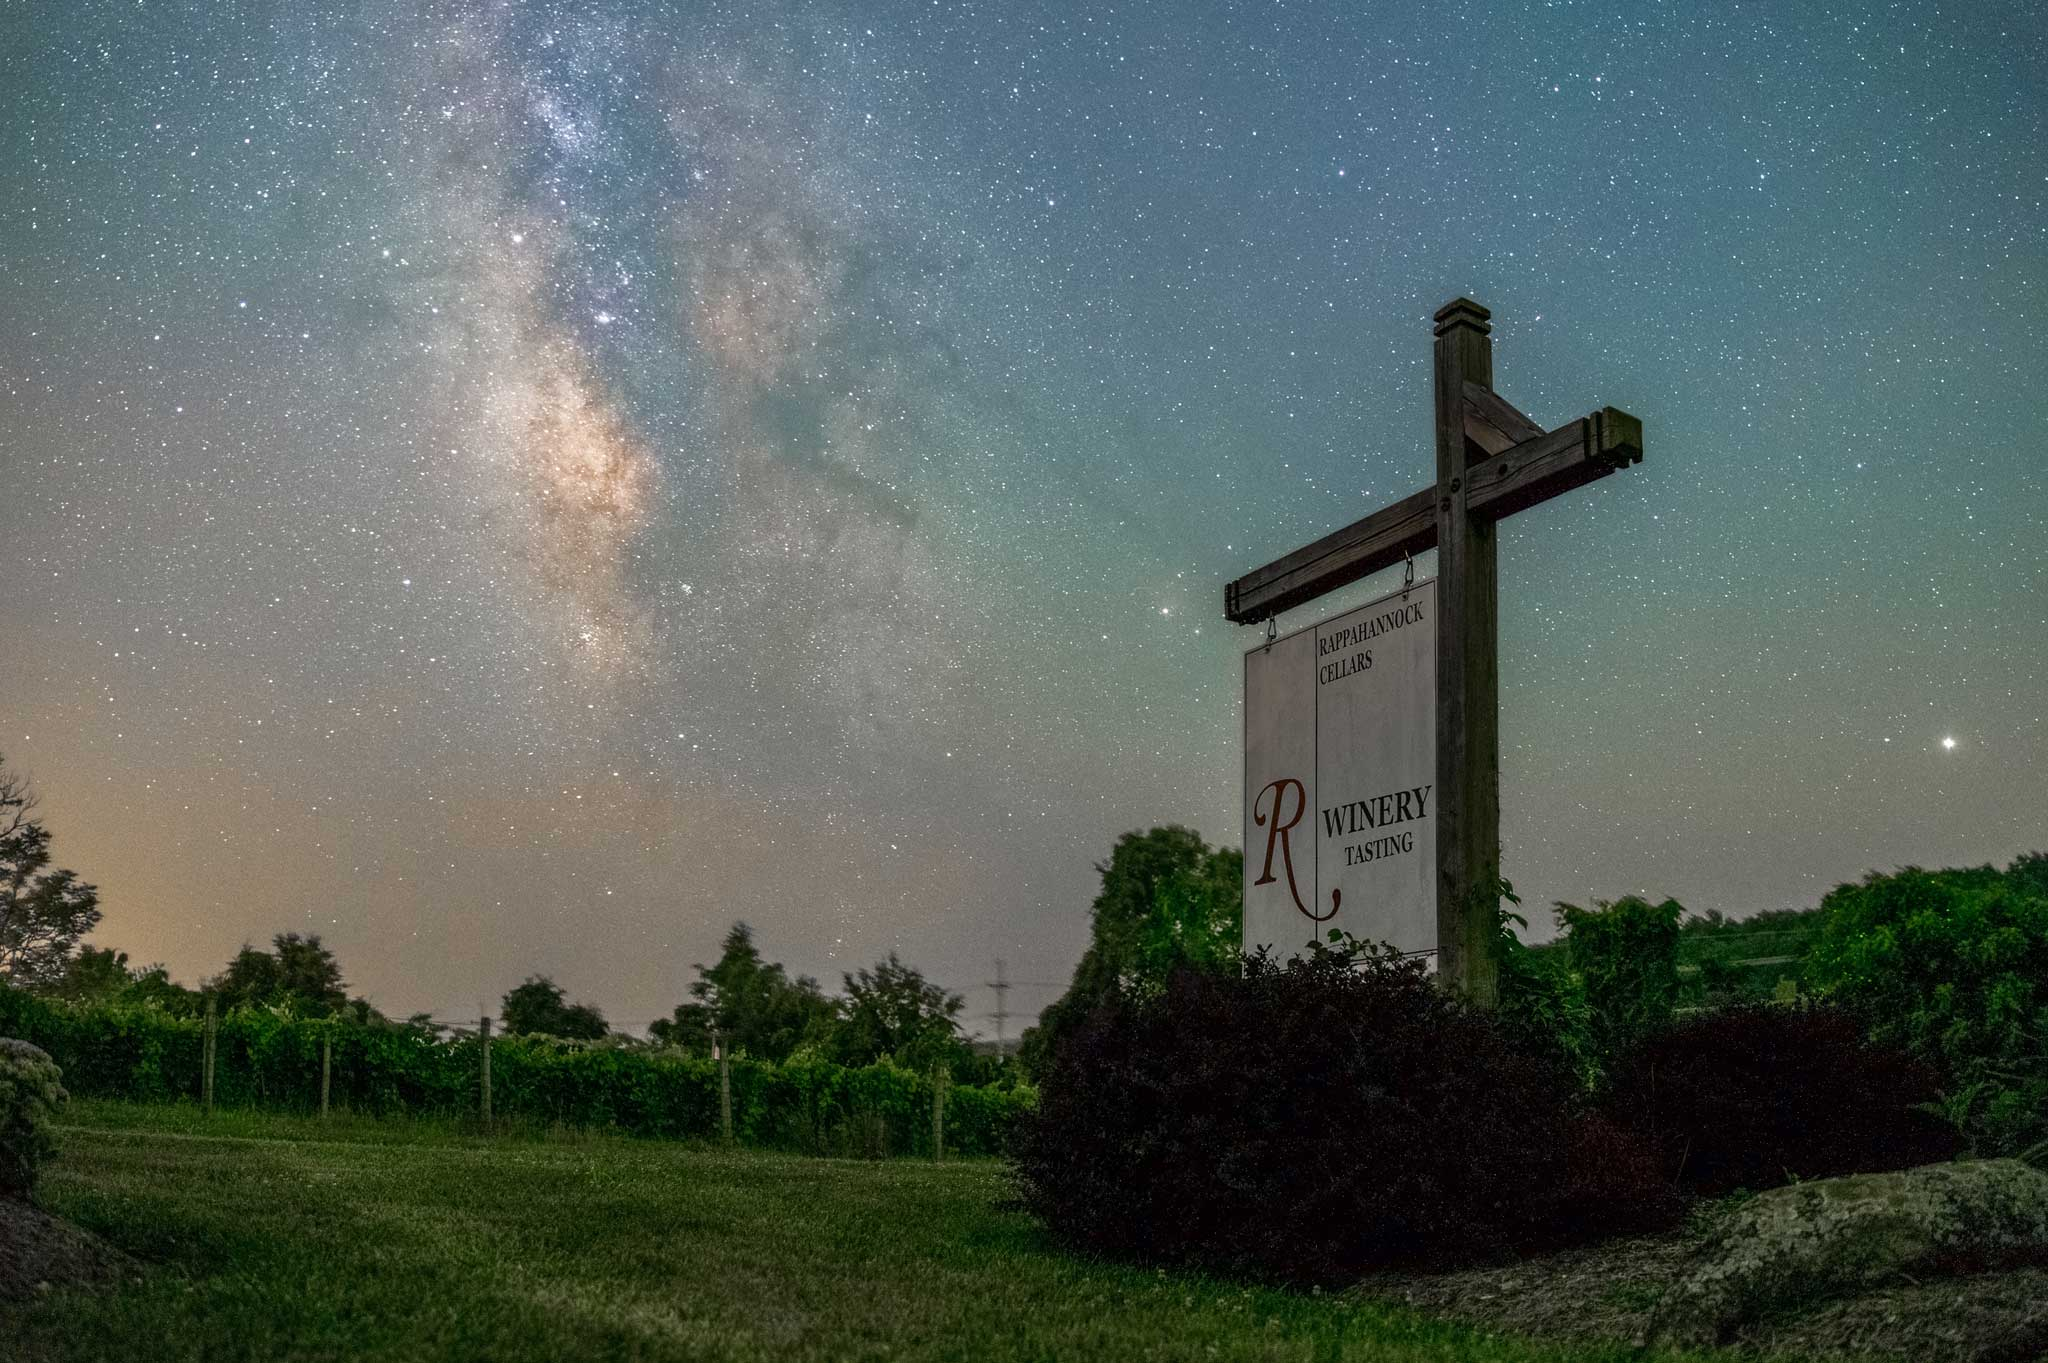 Rappahannock Cellars Winery Sign at driveway with Milky way visible in night sky